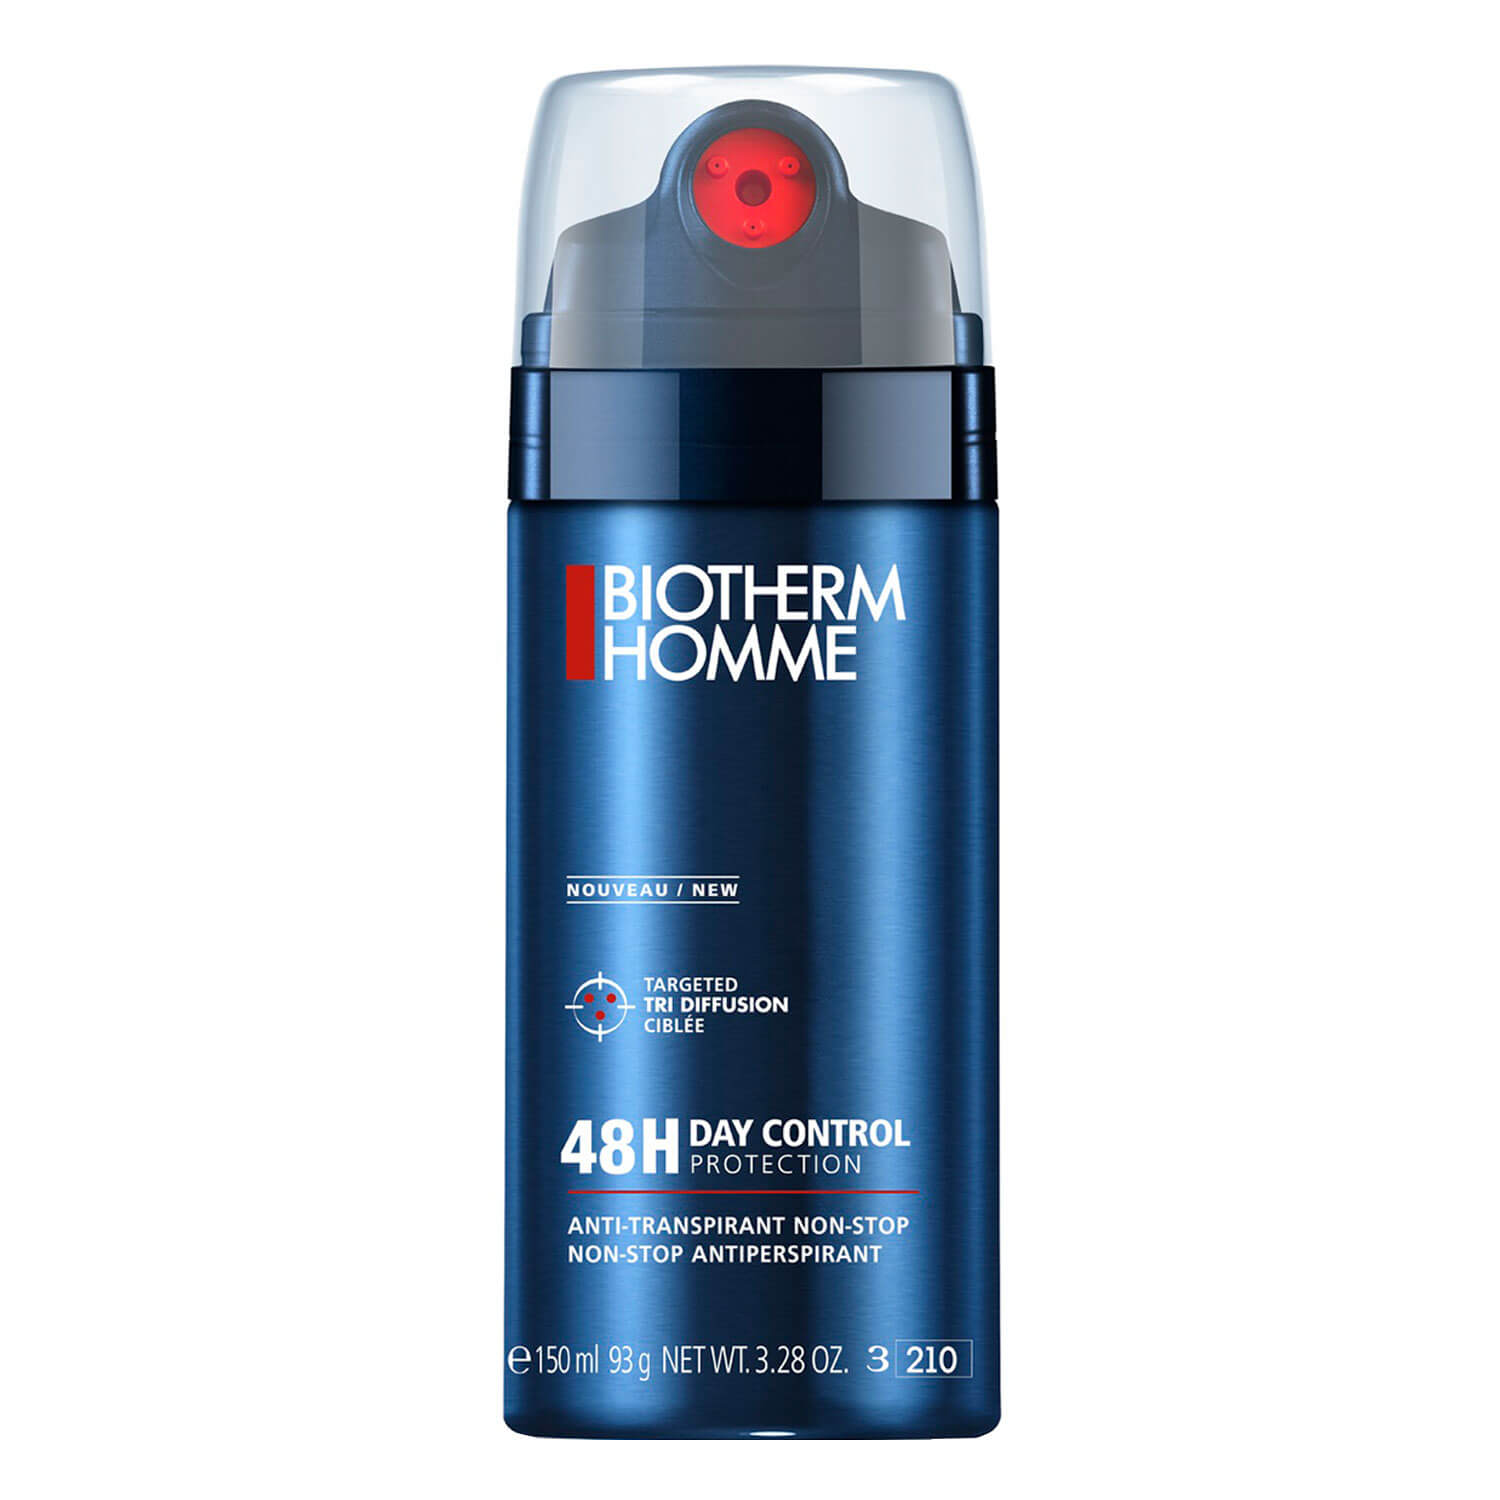 Biotherm Homme - Day Control 48H Extreme Protection Spray